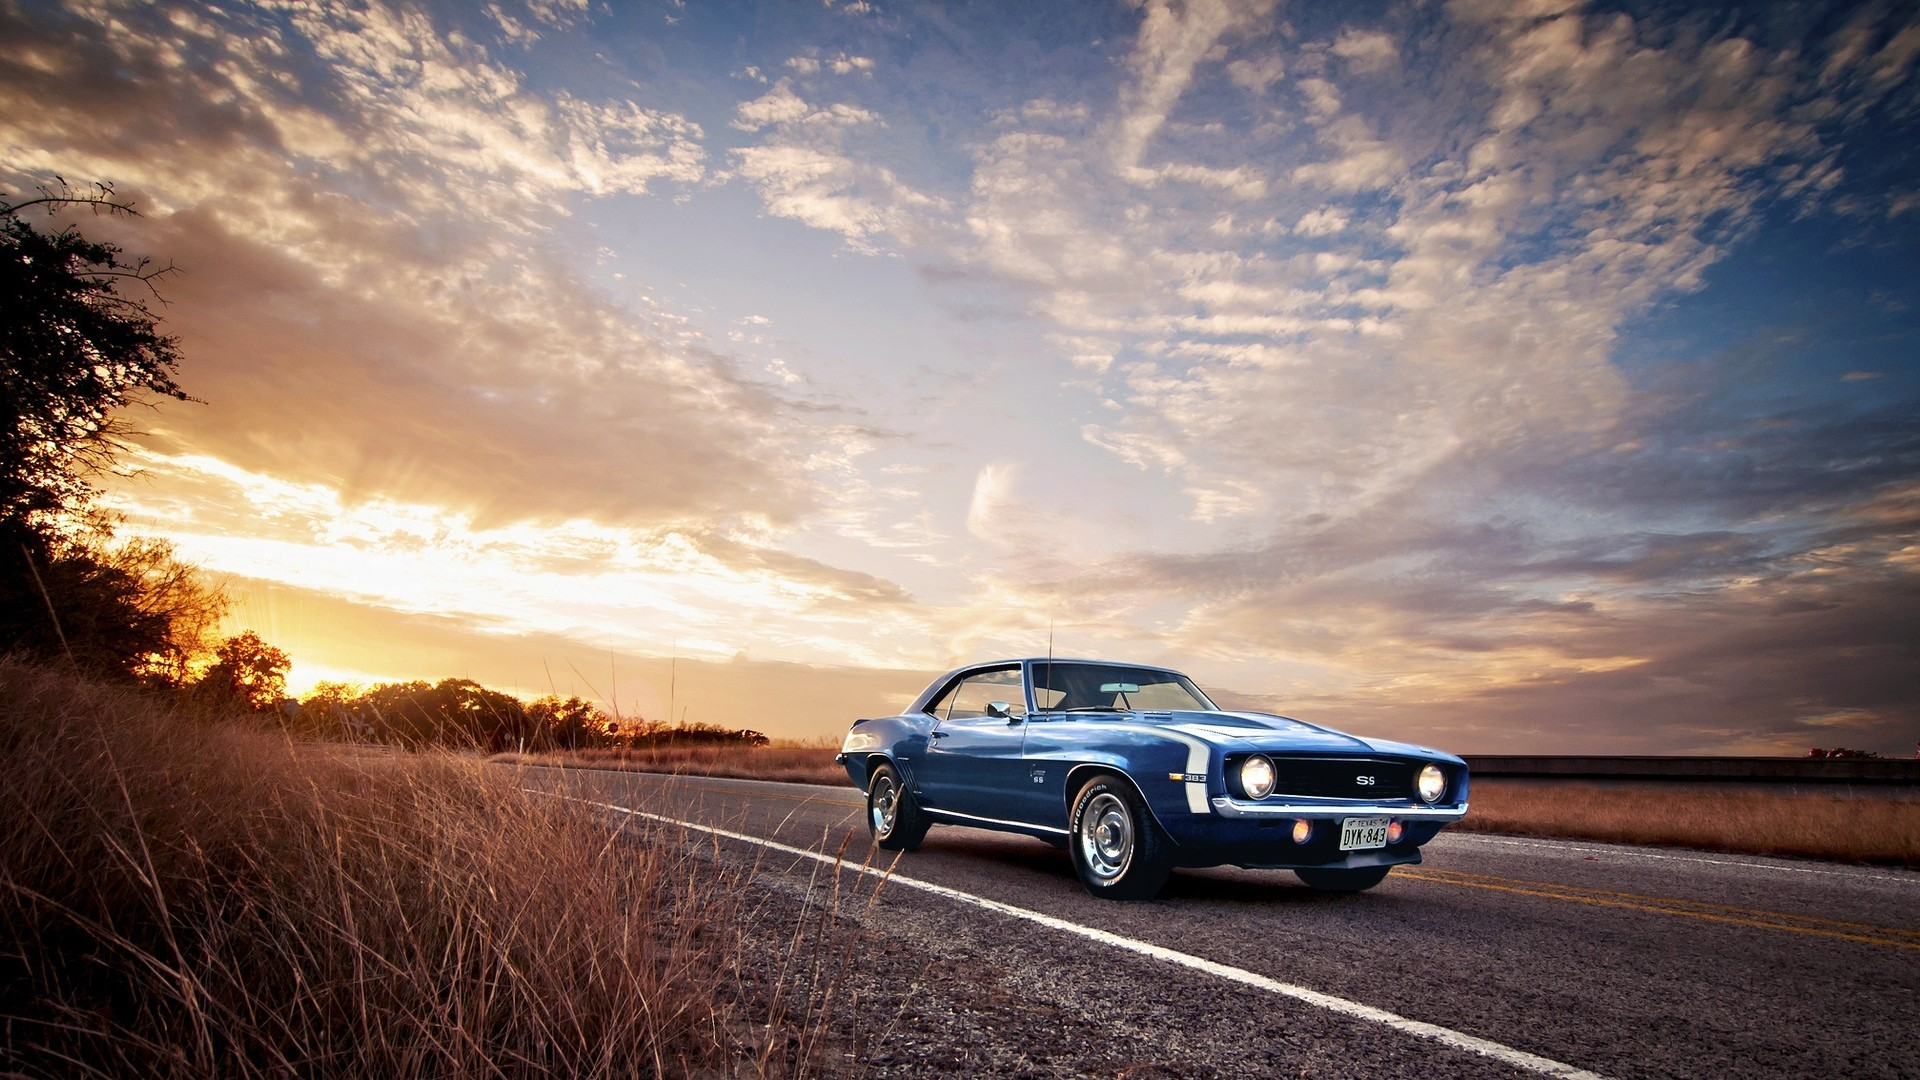 sports-car-auto-chevrolet-camaro-ss-muscle-cars-nature-road-1920x1080